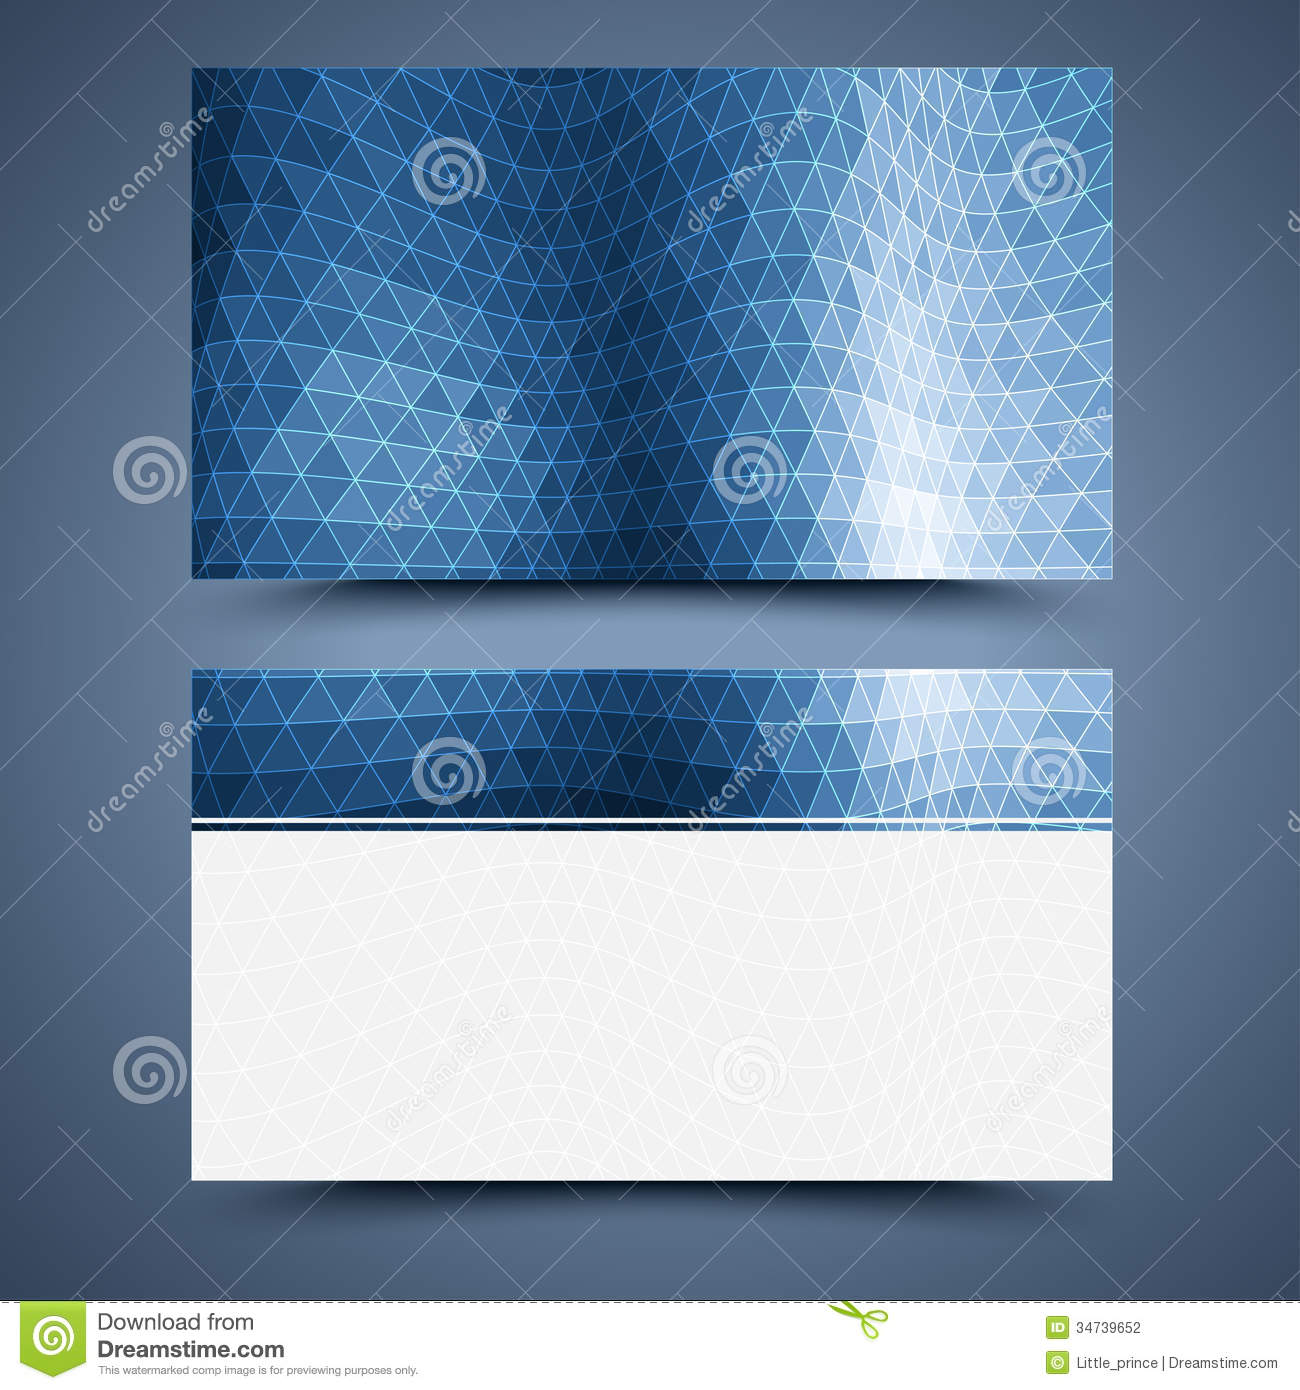 Blue business card template abstract background stock vector download blue business card template abstract background stock vector illustration of graphic backgrounds cheaphphosting Image collections